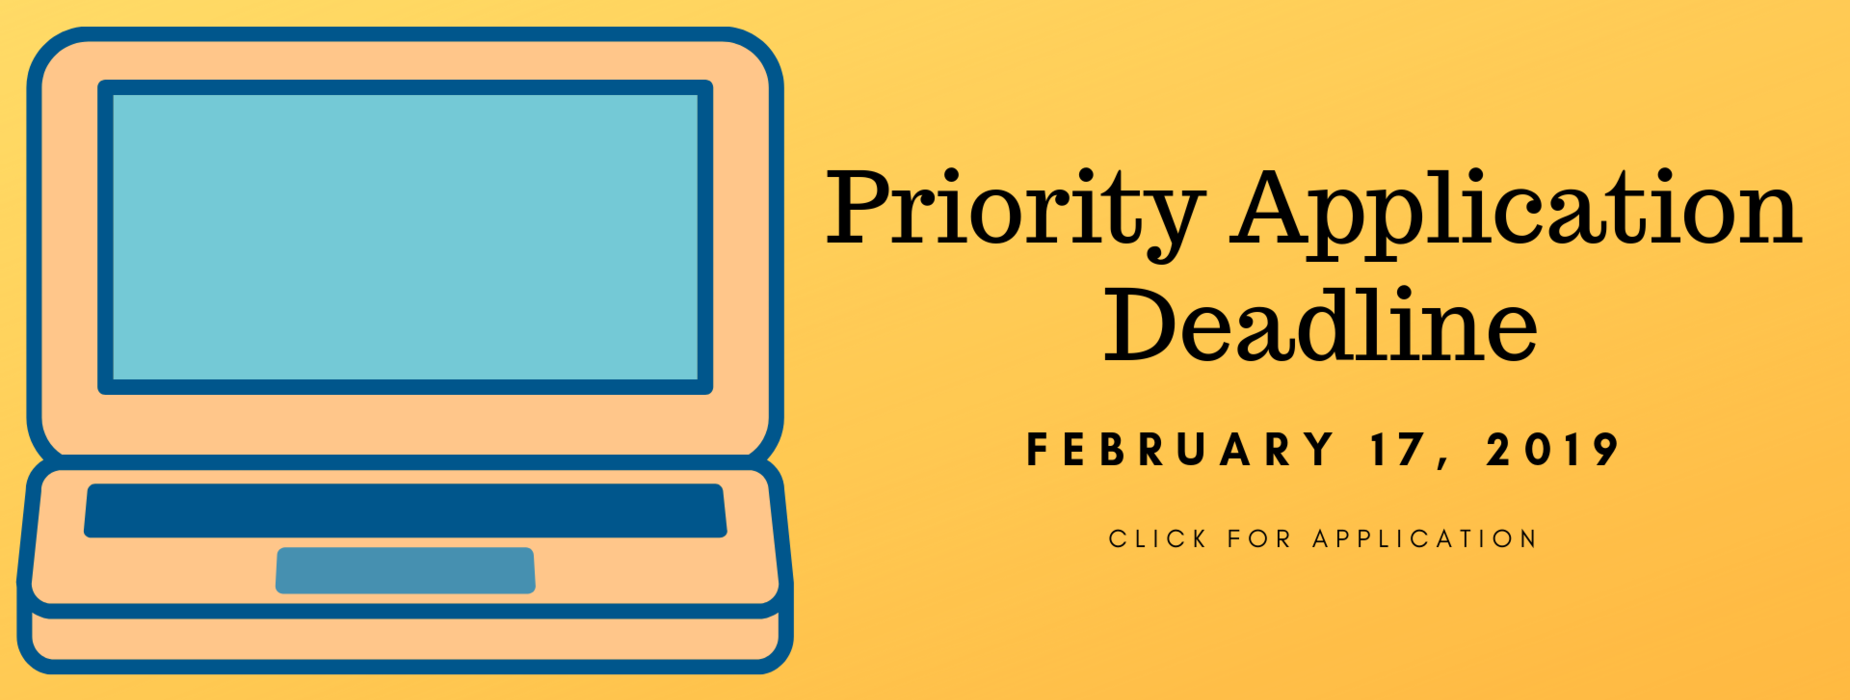 Priority application deadline is 2/17/19